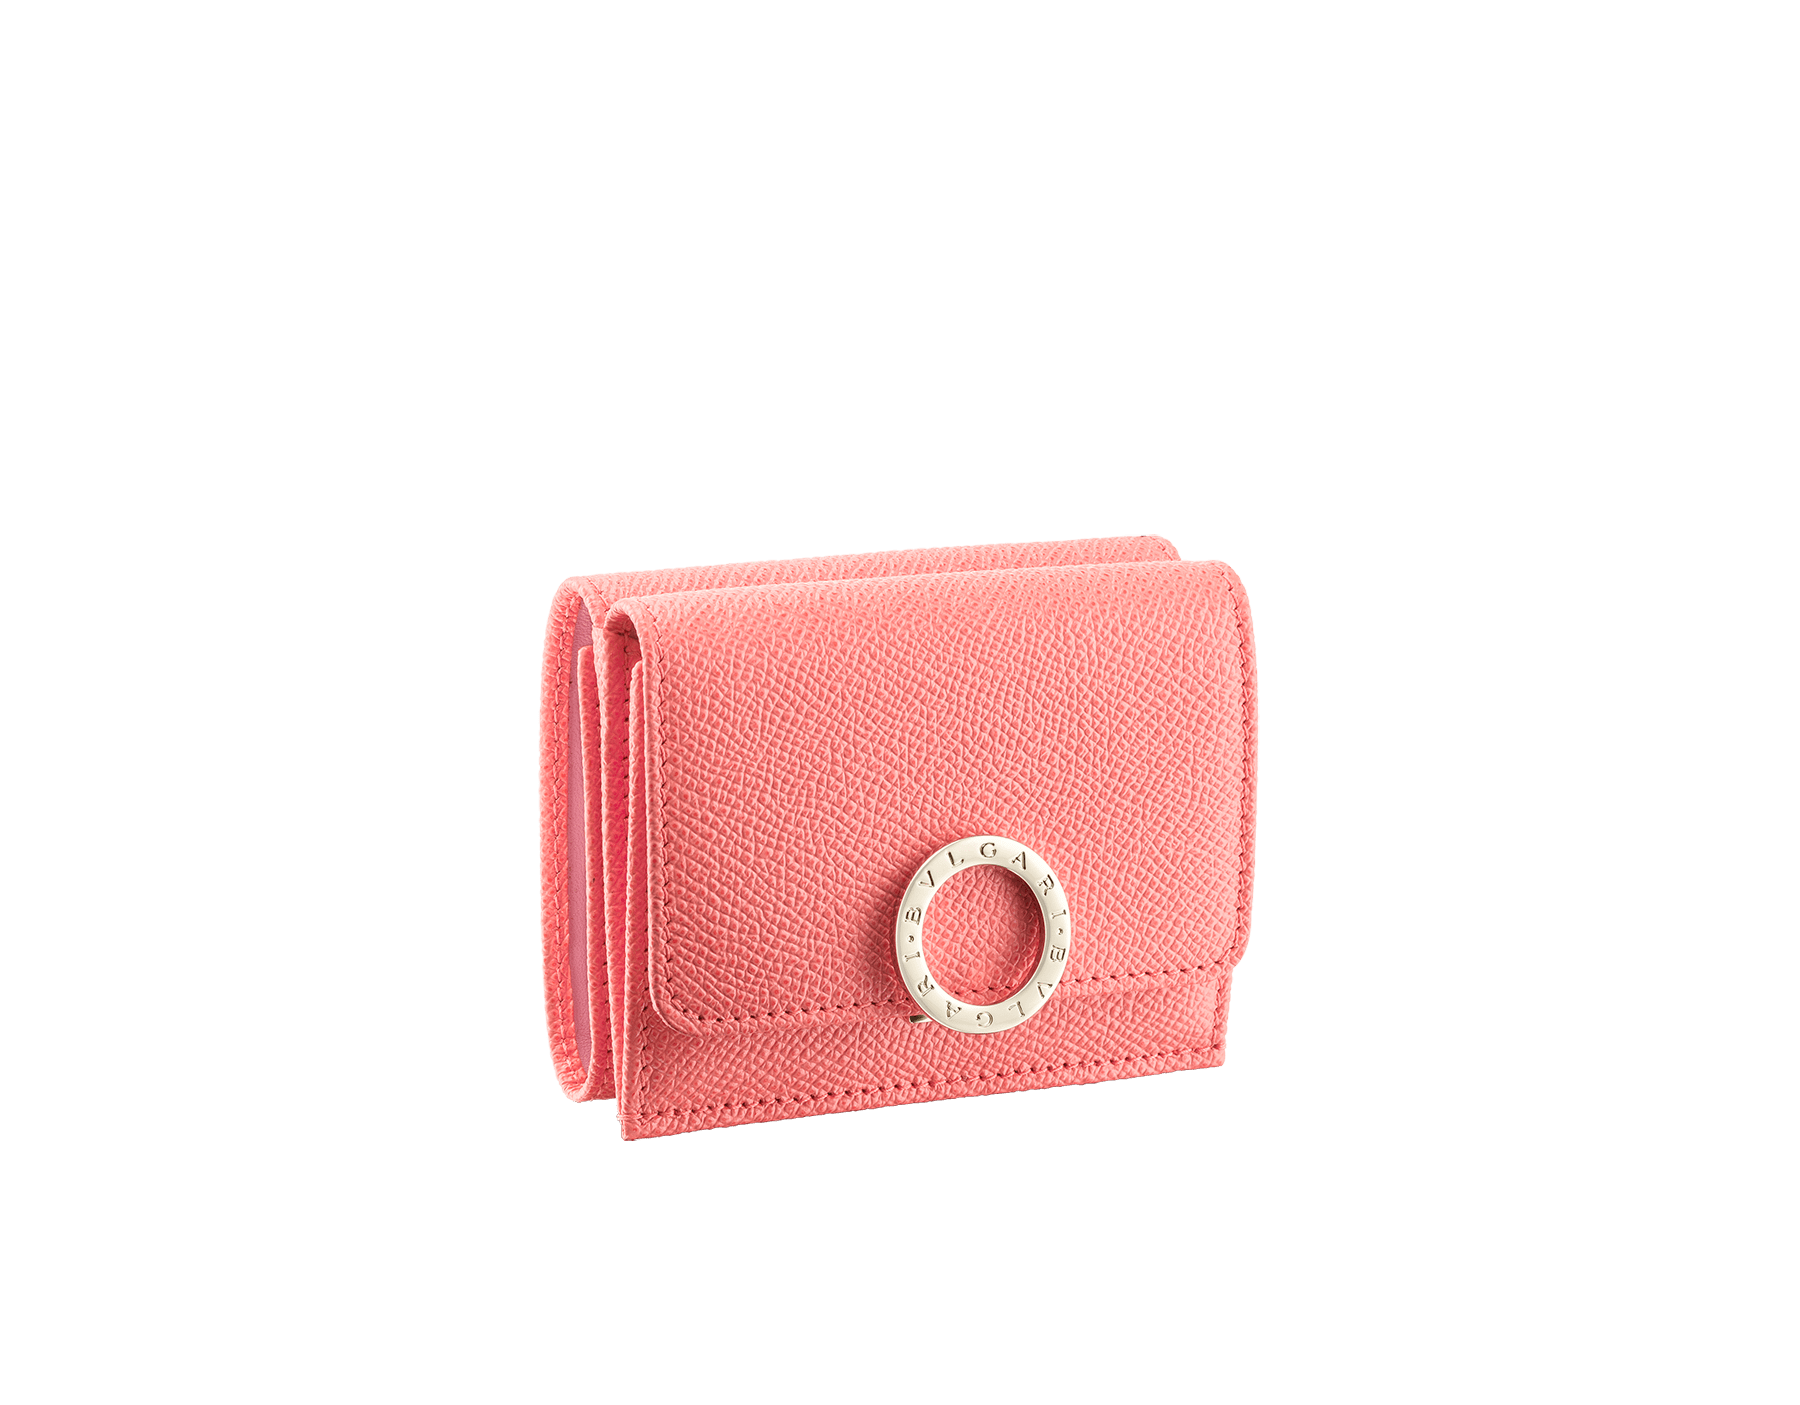 BVLGARI BVLGARI compact wallet in silky coral bright grain calf leather and flamingo quartz nappa leather. Iconic logo clip closure in light gold plated brass on the flap and press stud closure on the body. 289066 image 1